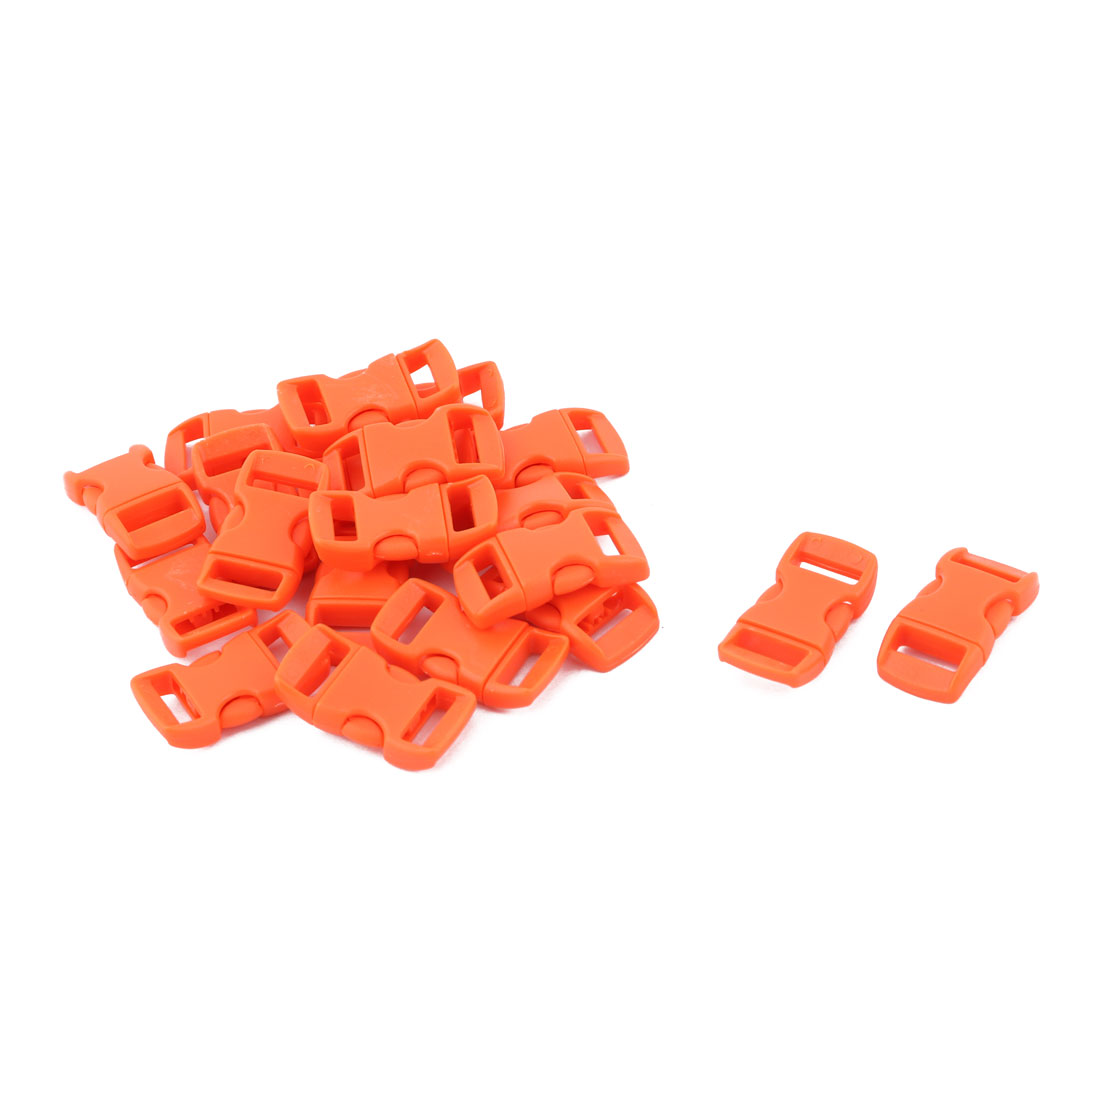 Bag Plastic Strap Webbing Belt Adjustive Connecting Quick Release Buckle Orange 20 Pcs